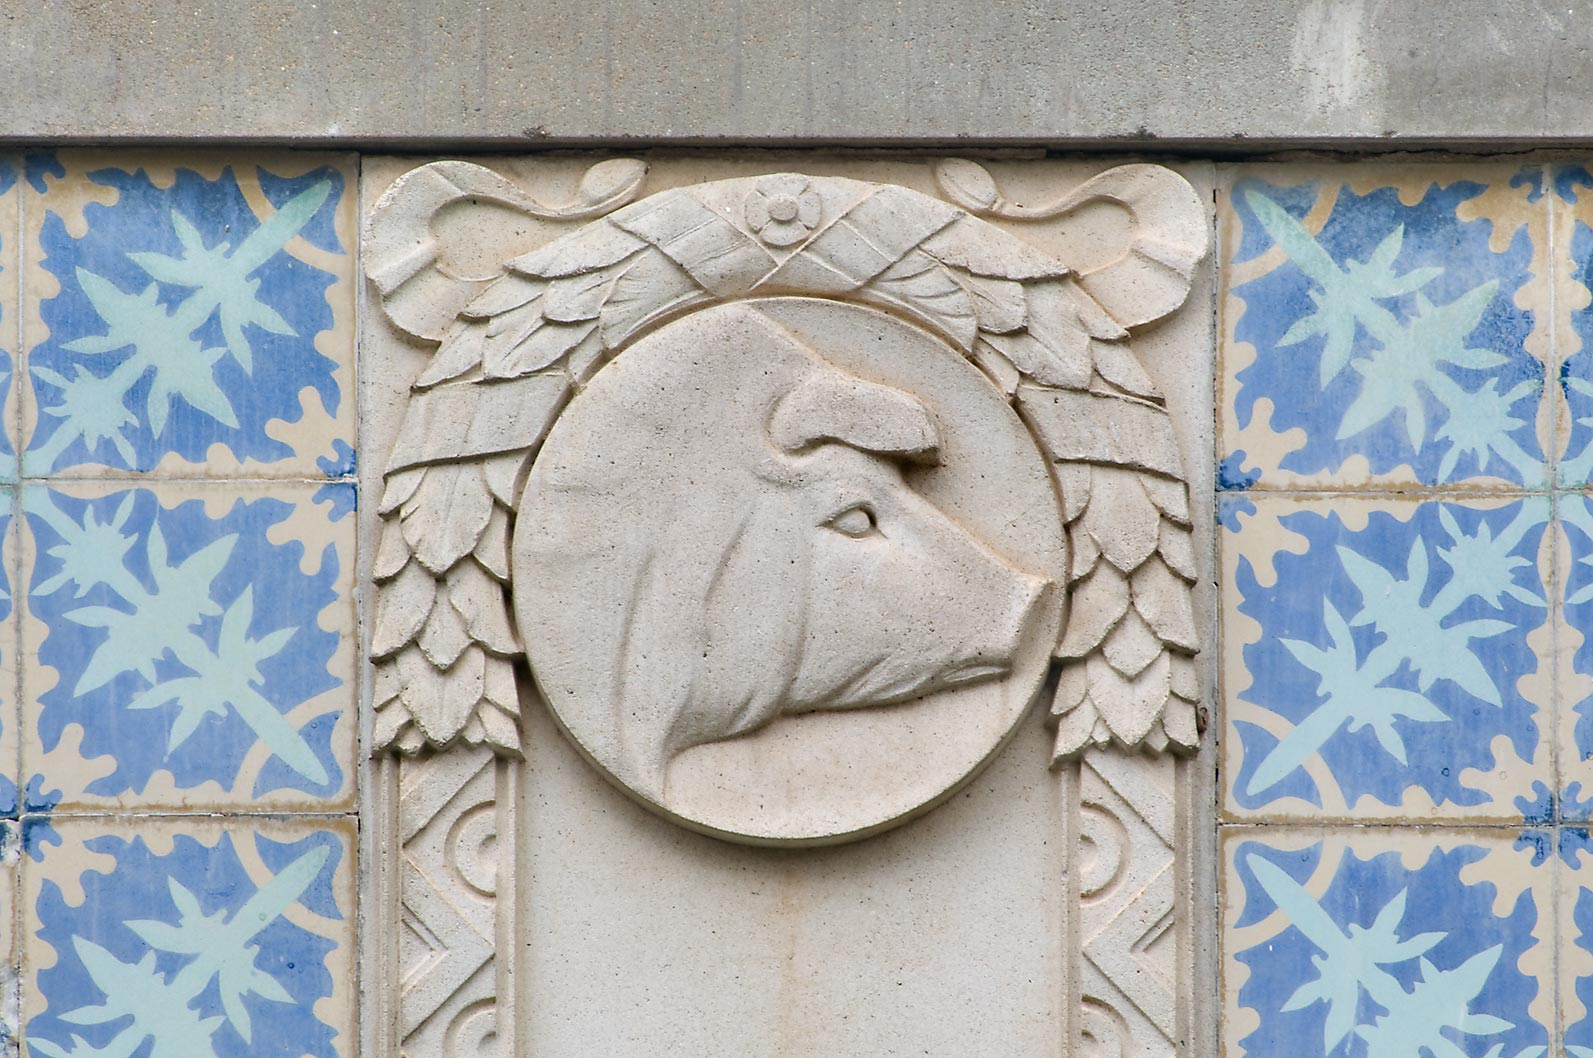 Pig head at cornice of Civil Engineering Building...M University. College Station, Texas